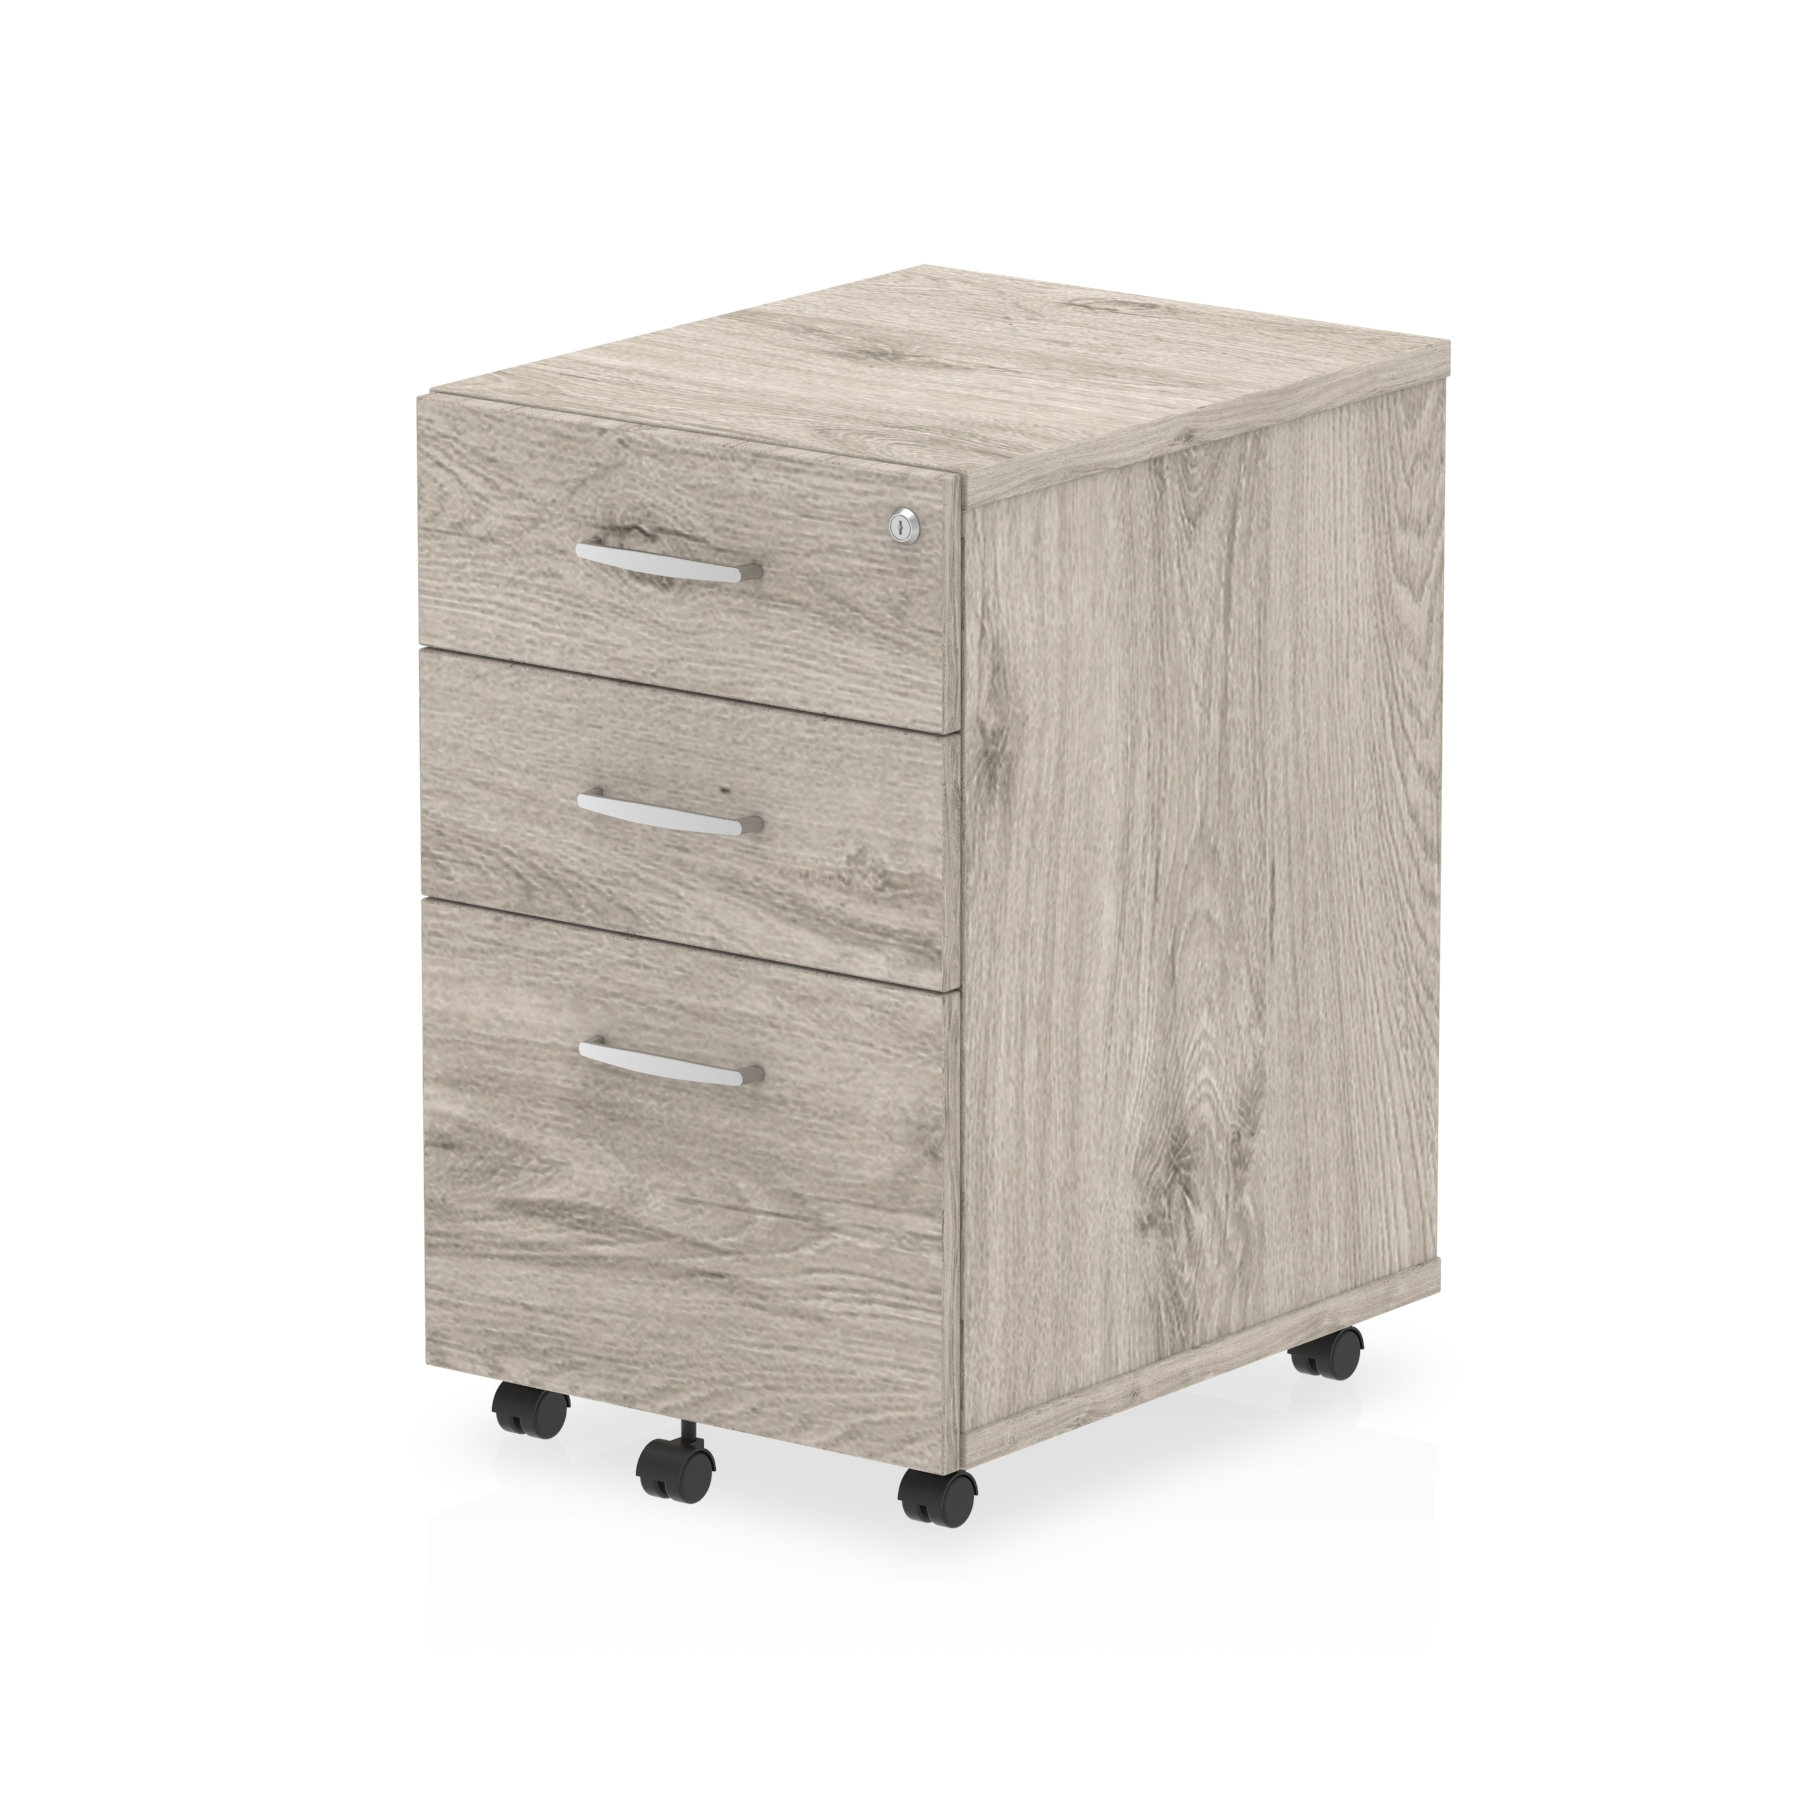 Pedestals Trexus Tall Under Desk Mobile Pedestal 440x550x695mm Grey Oak Ref I003226